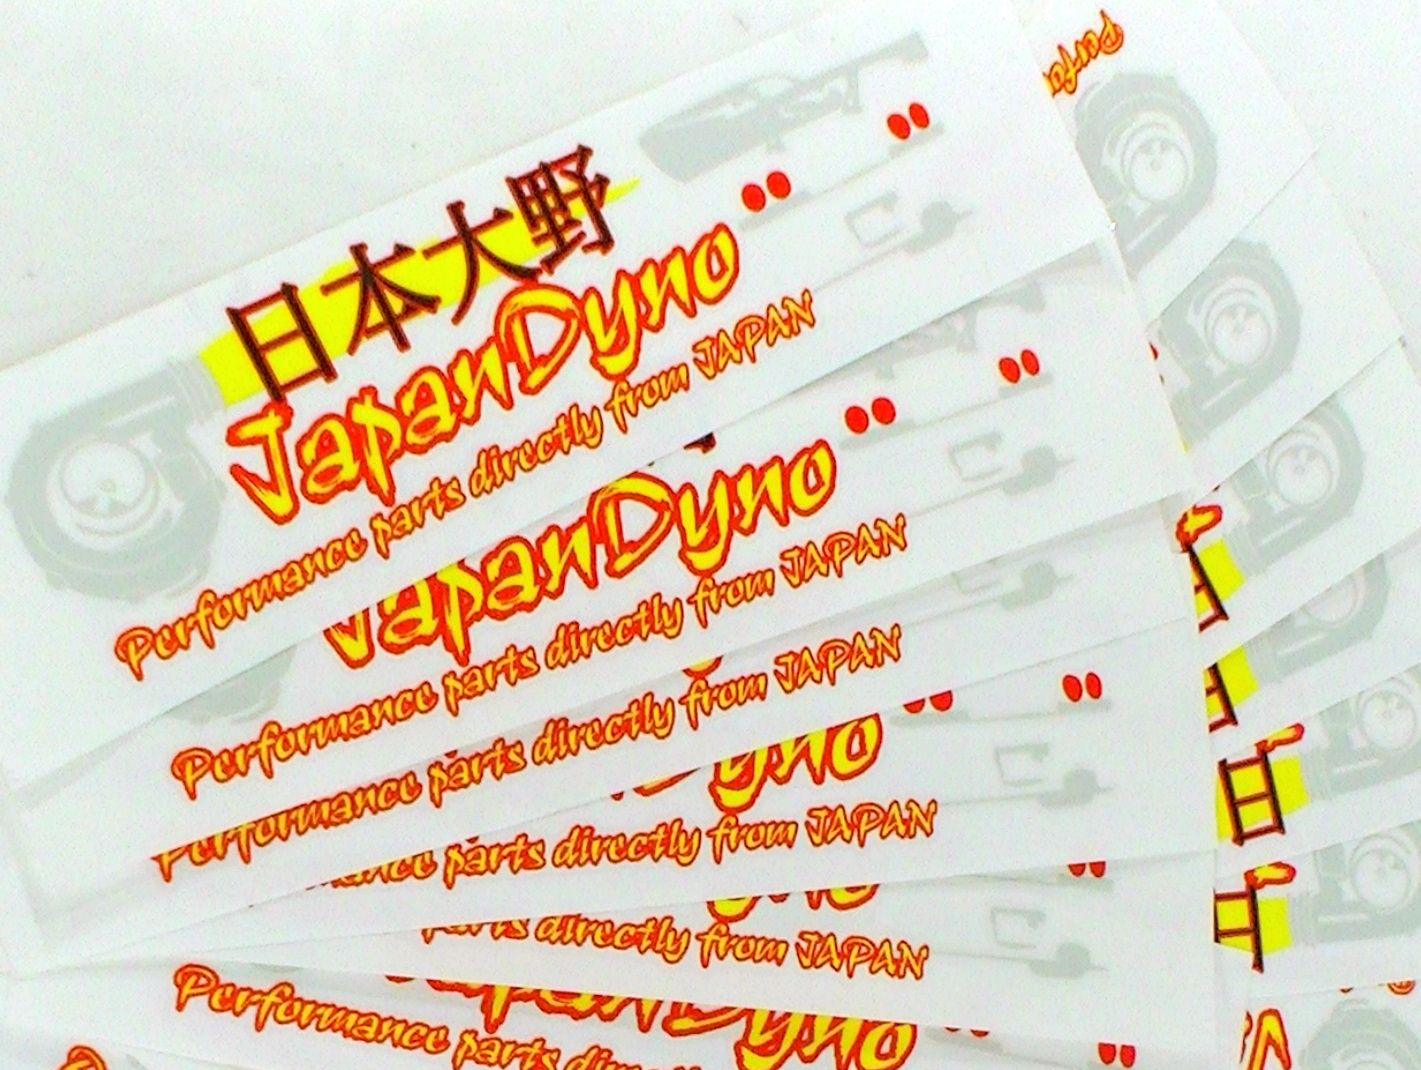 10x JapanDyno 330x80mm multicolor stickers Civic C33 Skyline GC8